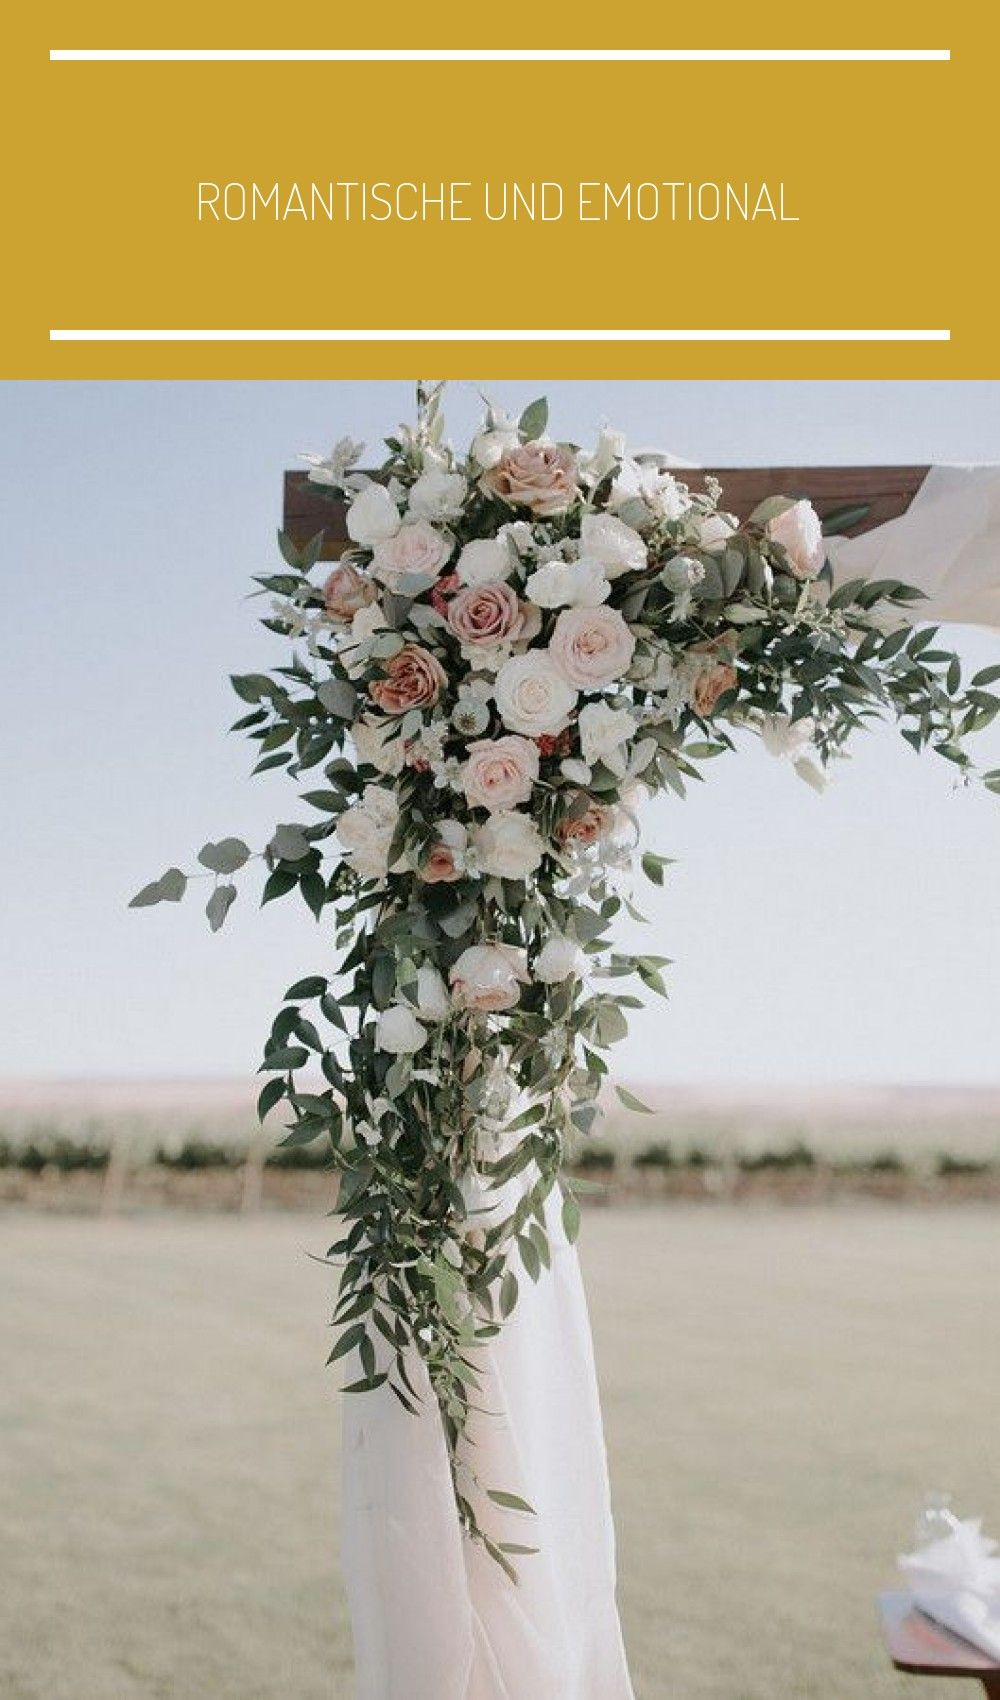 Romantische und emotionale Weinberghochzeit in zentralem Washington, #emotionale #romantische #und #Washington #Weinberghochzeit #zentralem #wedding flowers decoration diy Romantische und emotionale Weinberghochzeit in zentralem Washington